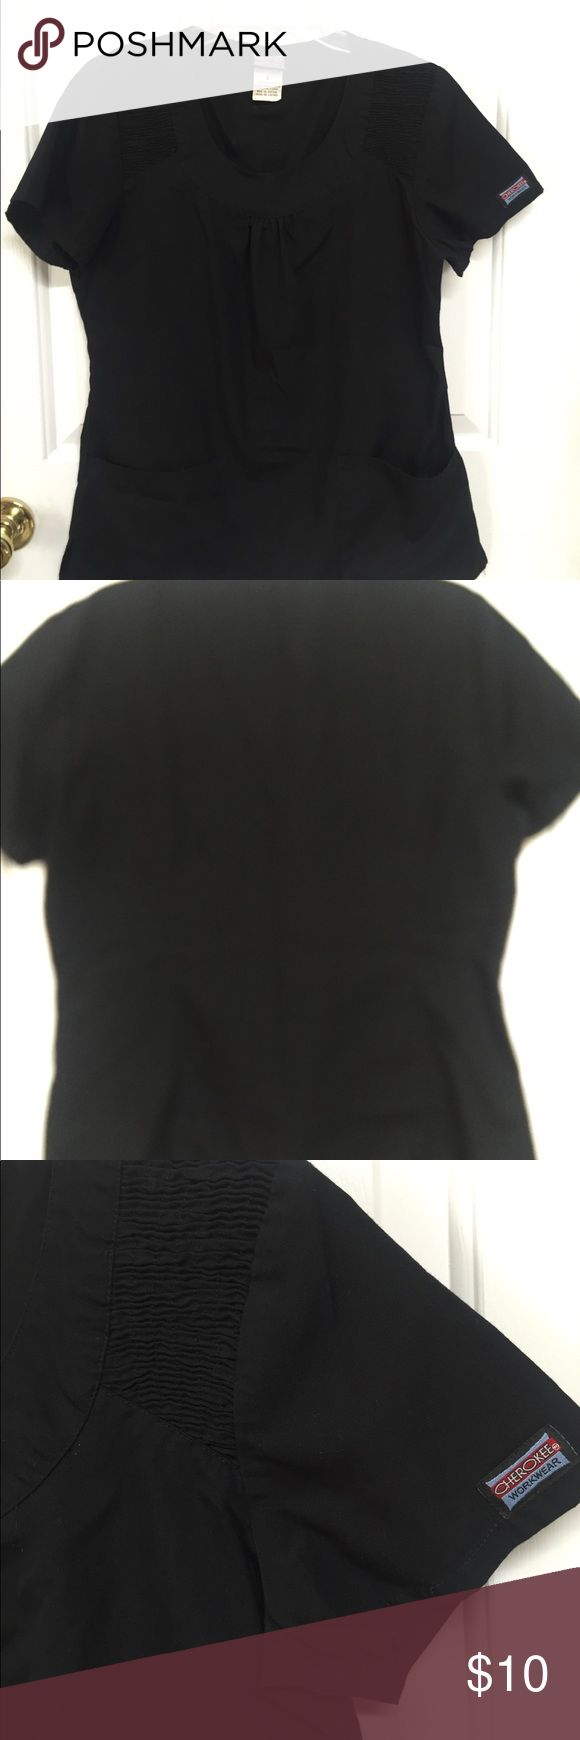 "Cherokee Workwear Scrub Top #4761 Round neck BLACK PRODUCT DESCRIPTION  Cherokee #4761 Size Small  Bust 35-36""  Waist 27-28""  Hip 37-38""  Female Round Neck Top is a stylized round neckline scrub top featuring elasticized smocking at the shoulder seams, patch pockets, slight shirring at the centre front, and back princess seams. Fabric is made from 65% Poly/35% Cotton Poplin with Soil Release Cherokee Tops"